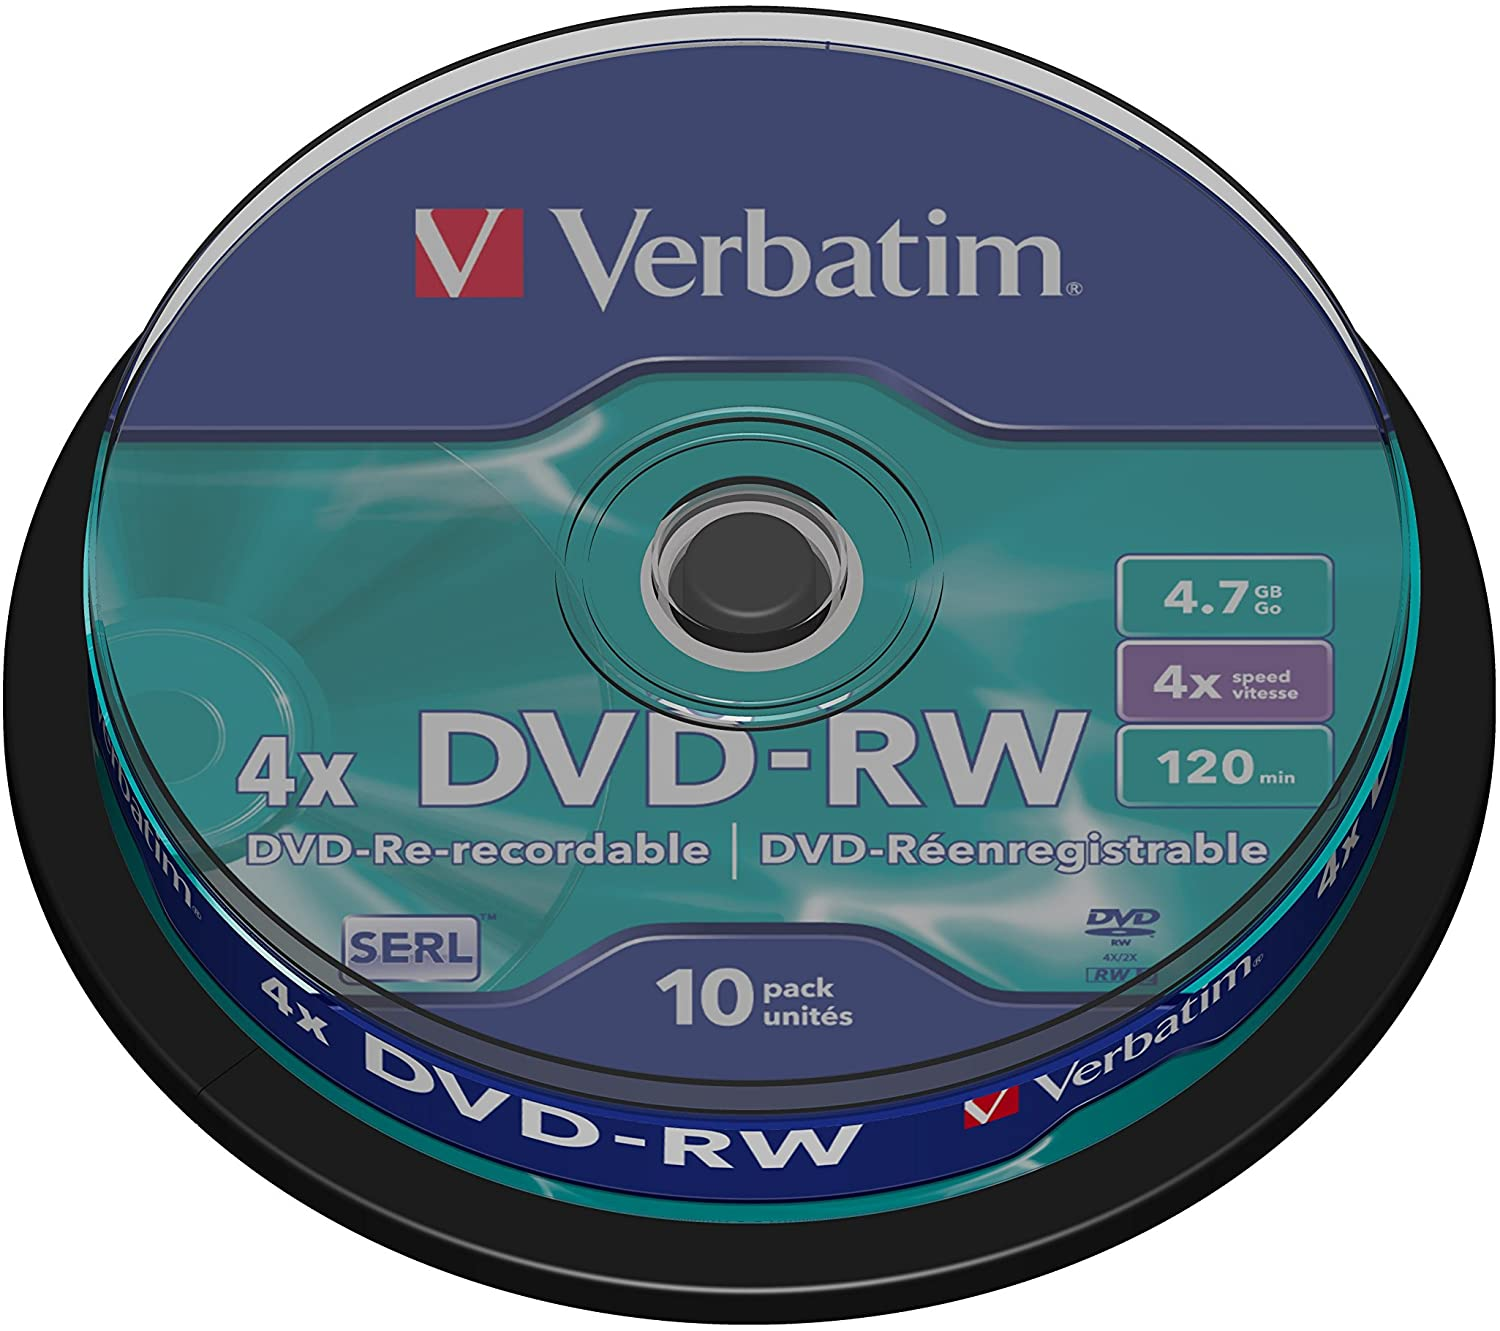 Verbatim DVD-RW 4x 4.7GB Discs on a Spindle - Pack of 10